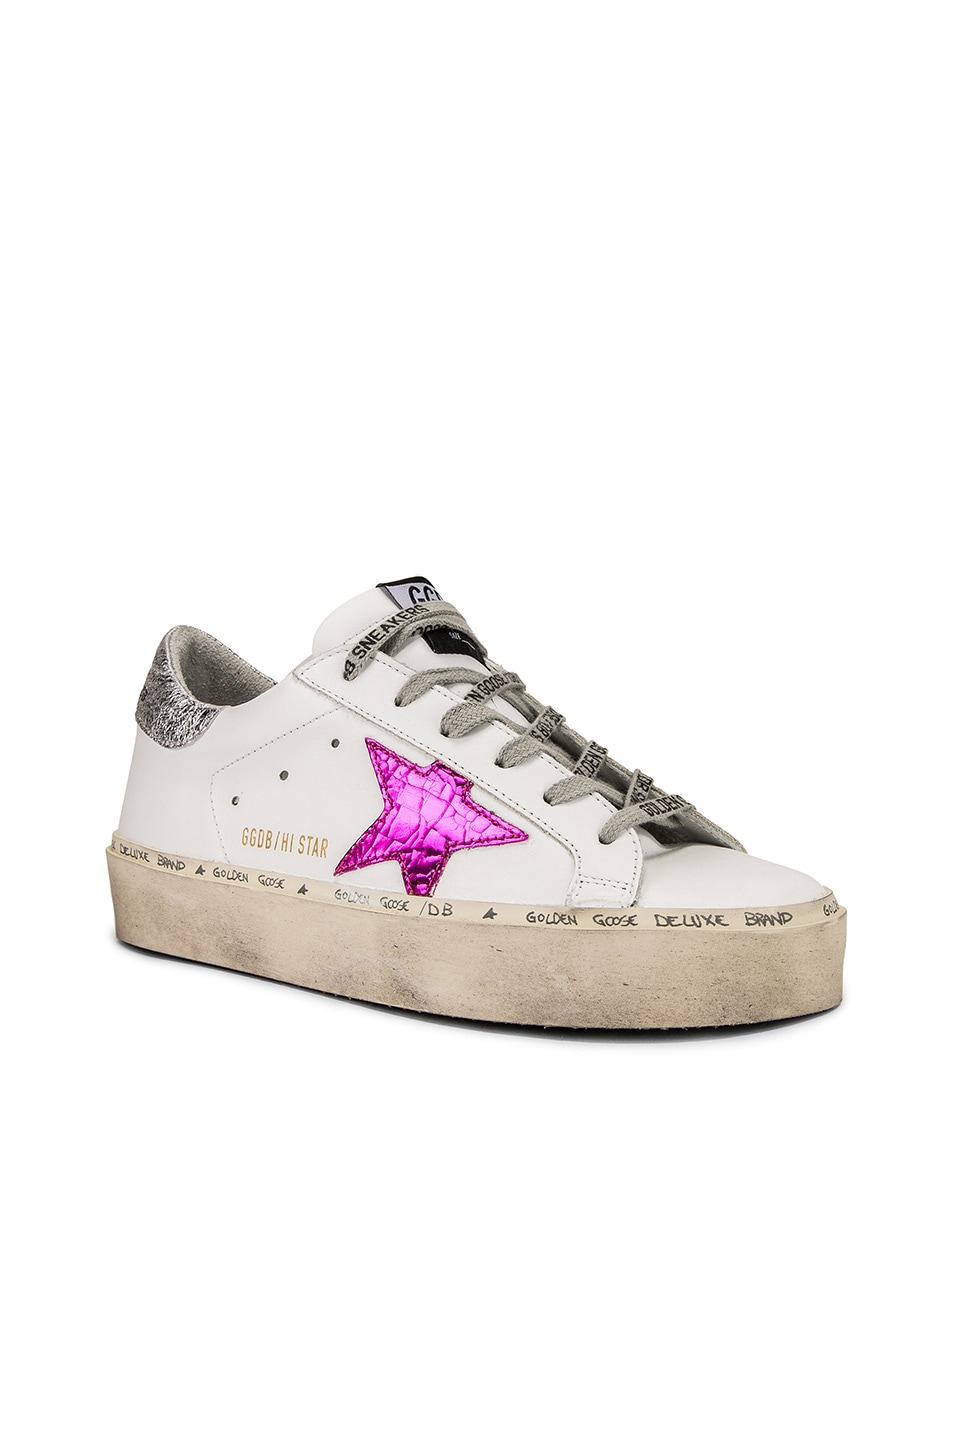 Image 3 of Golden Goose Hi Star Sneakers in White Leather & Silver Pink